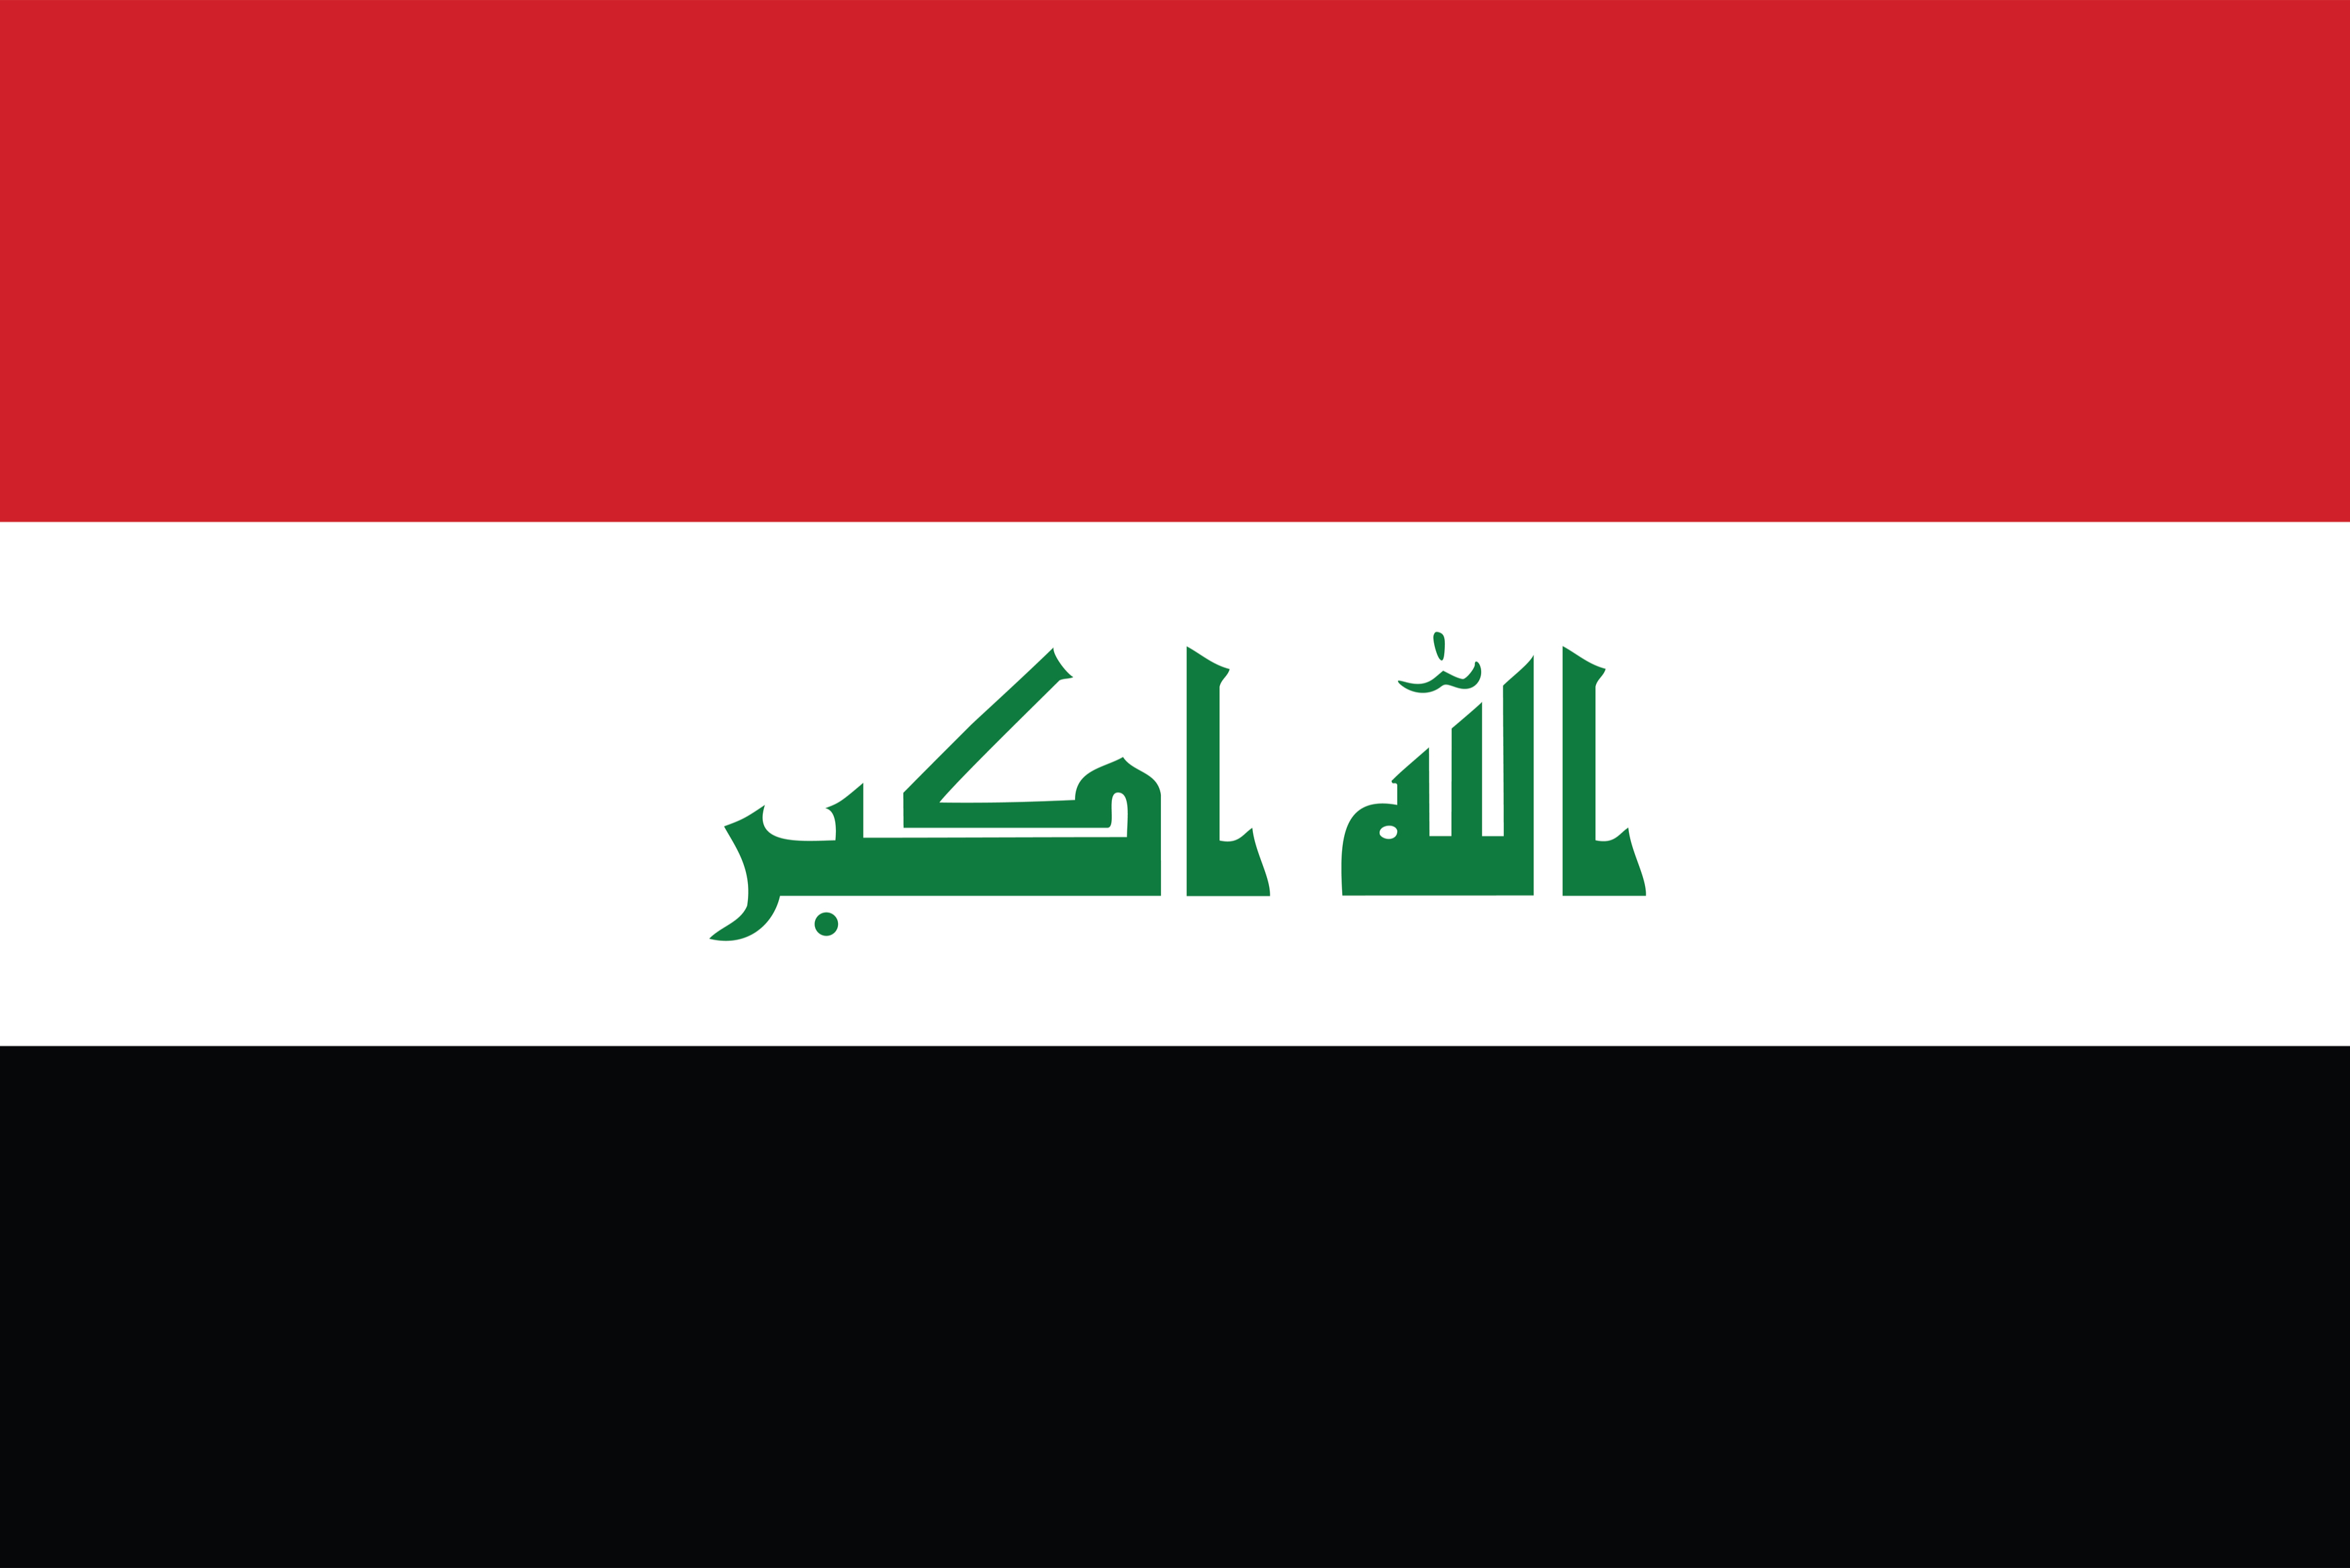 The flag of Iraq.